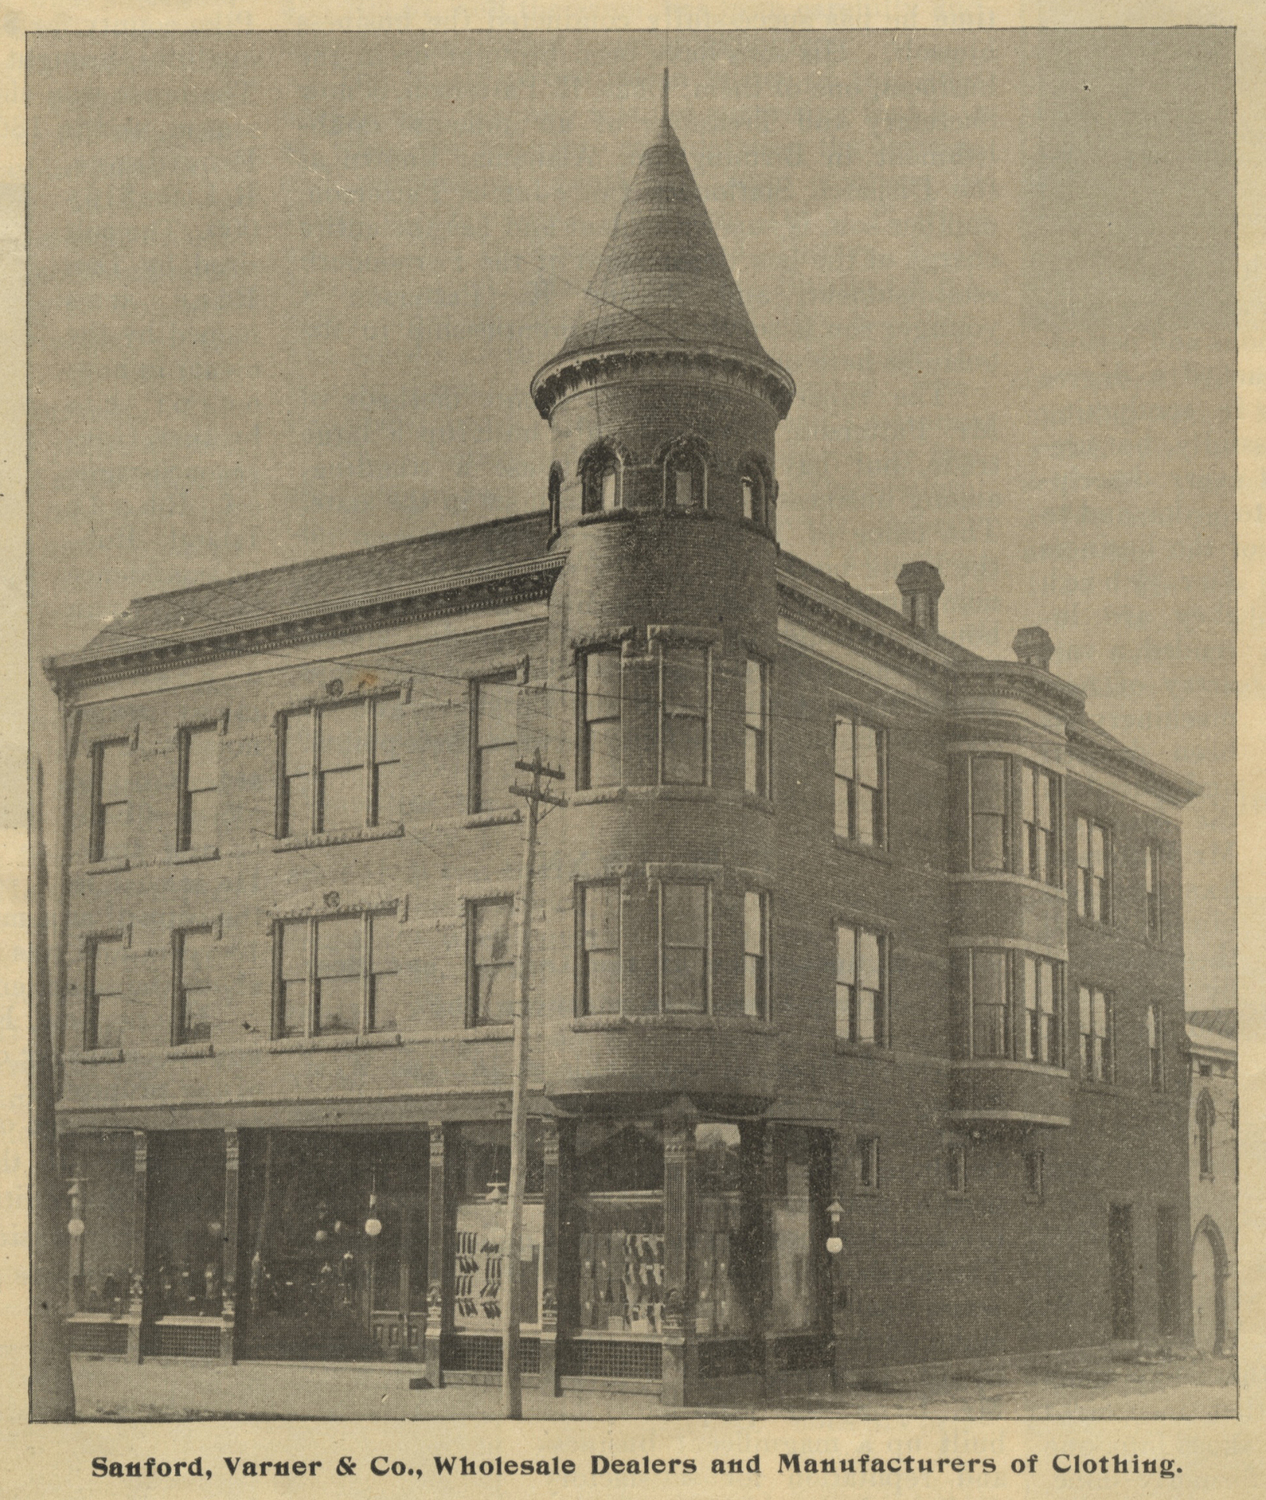 Sanford, Varner & Co. factory building, constructed in 1894, located at the southwestern corner of Third and Chillicothe streets.